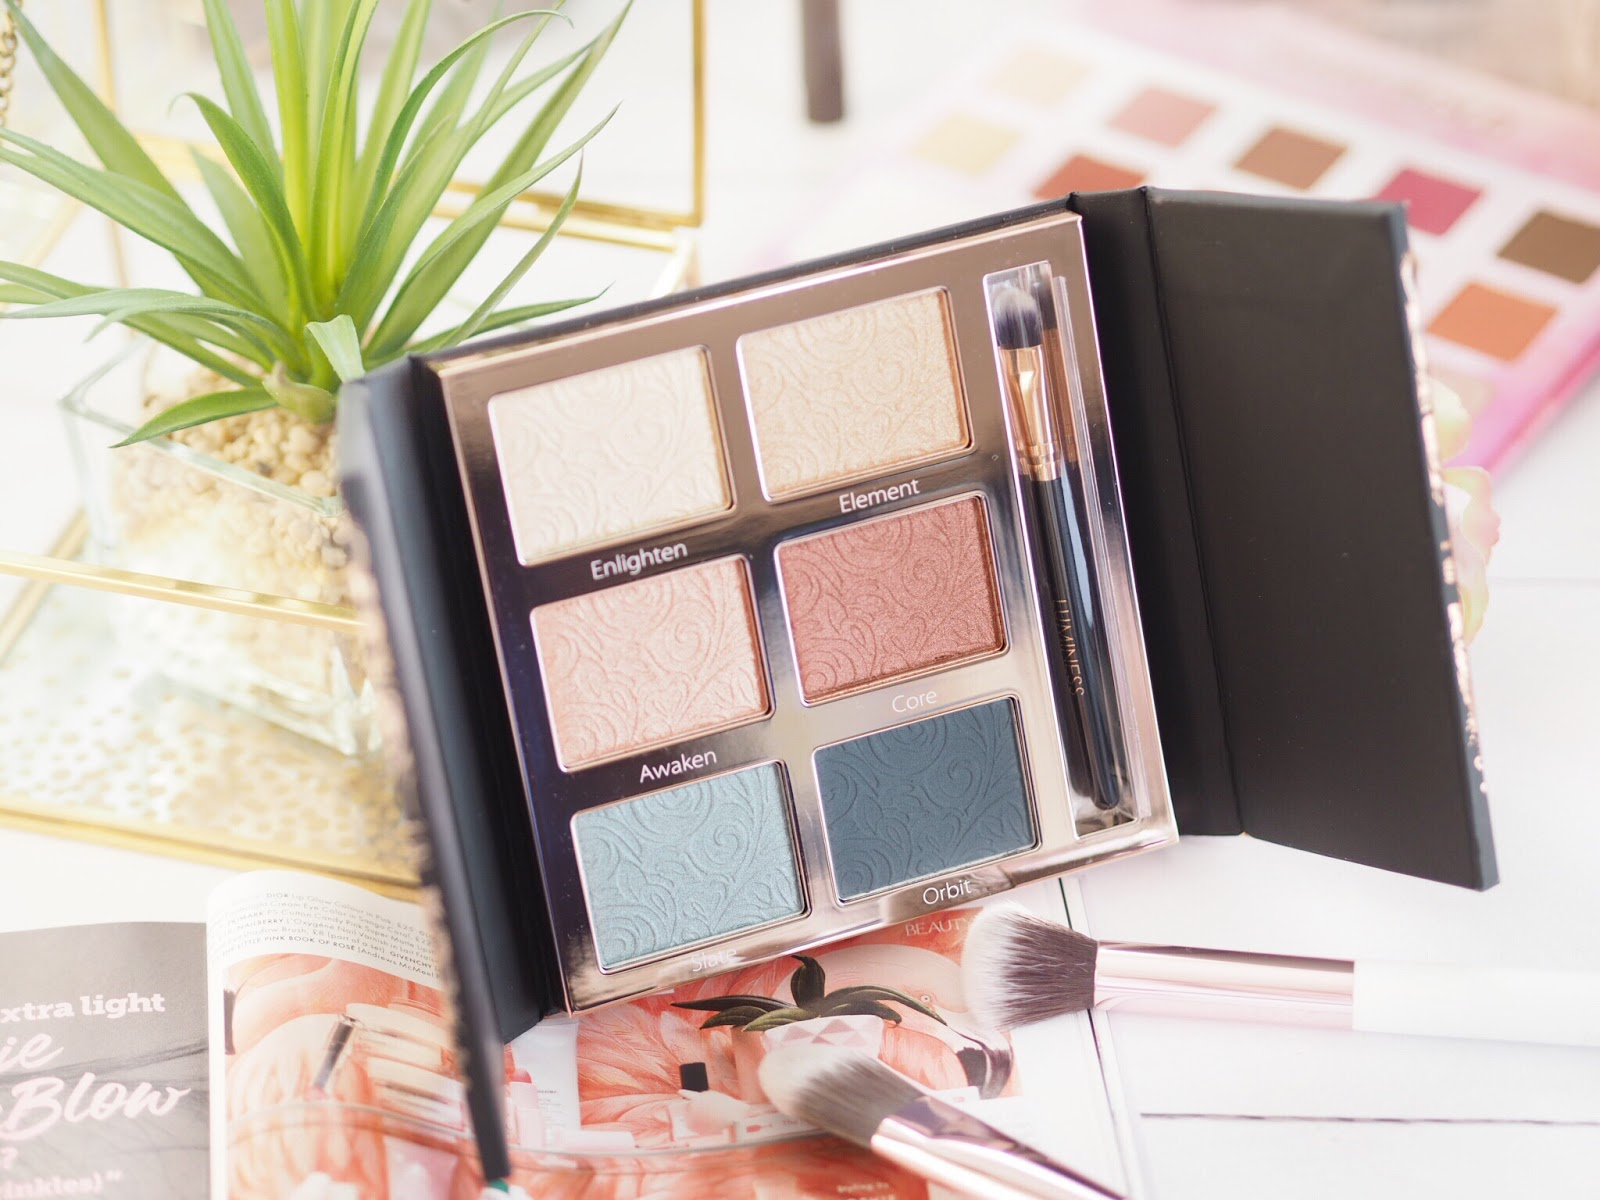 eyeshadow palette, cream eyeshadow palette, eyeshadow palette, make-up palette